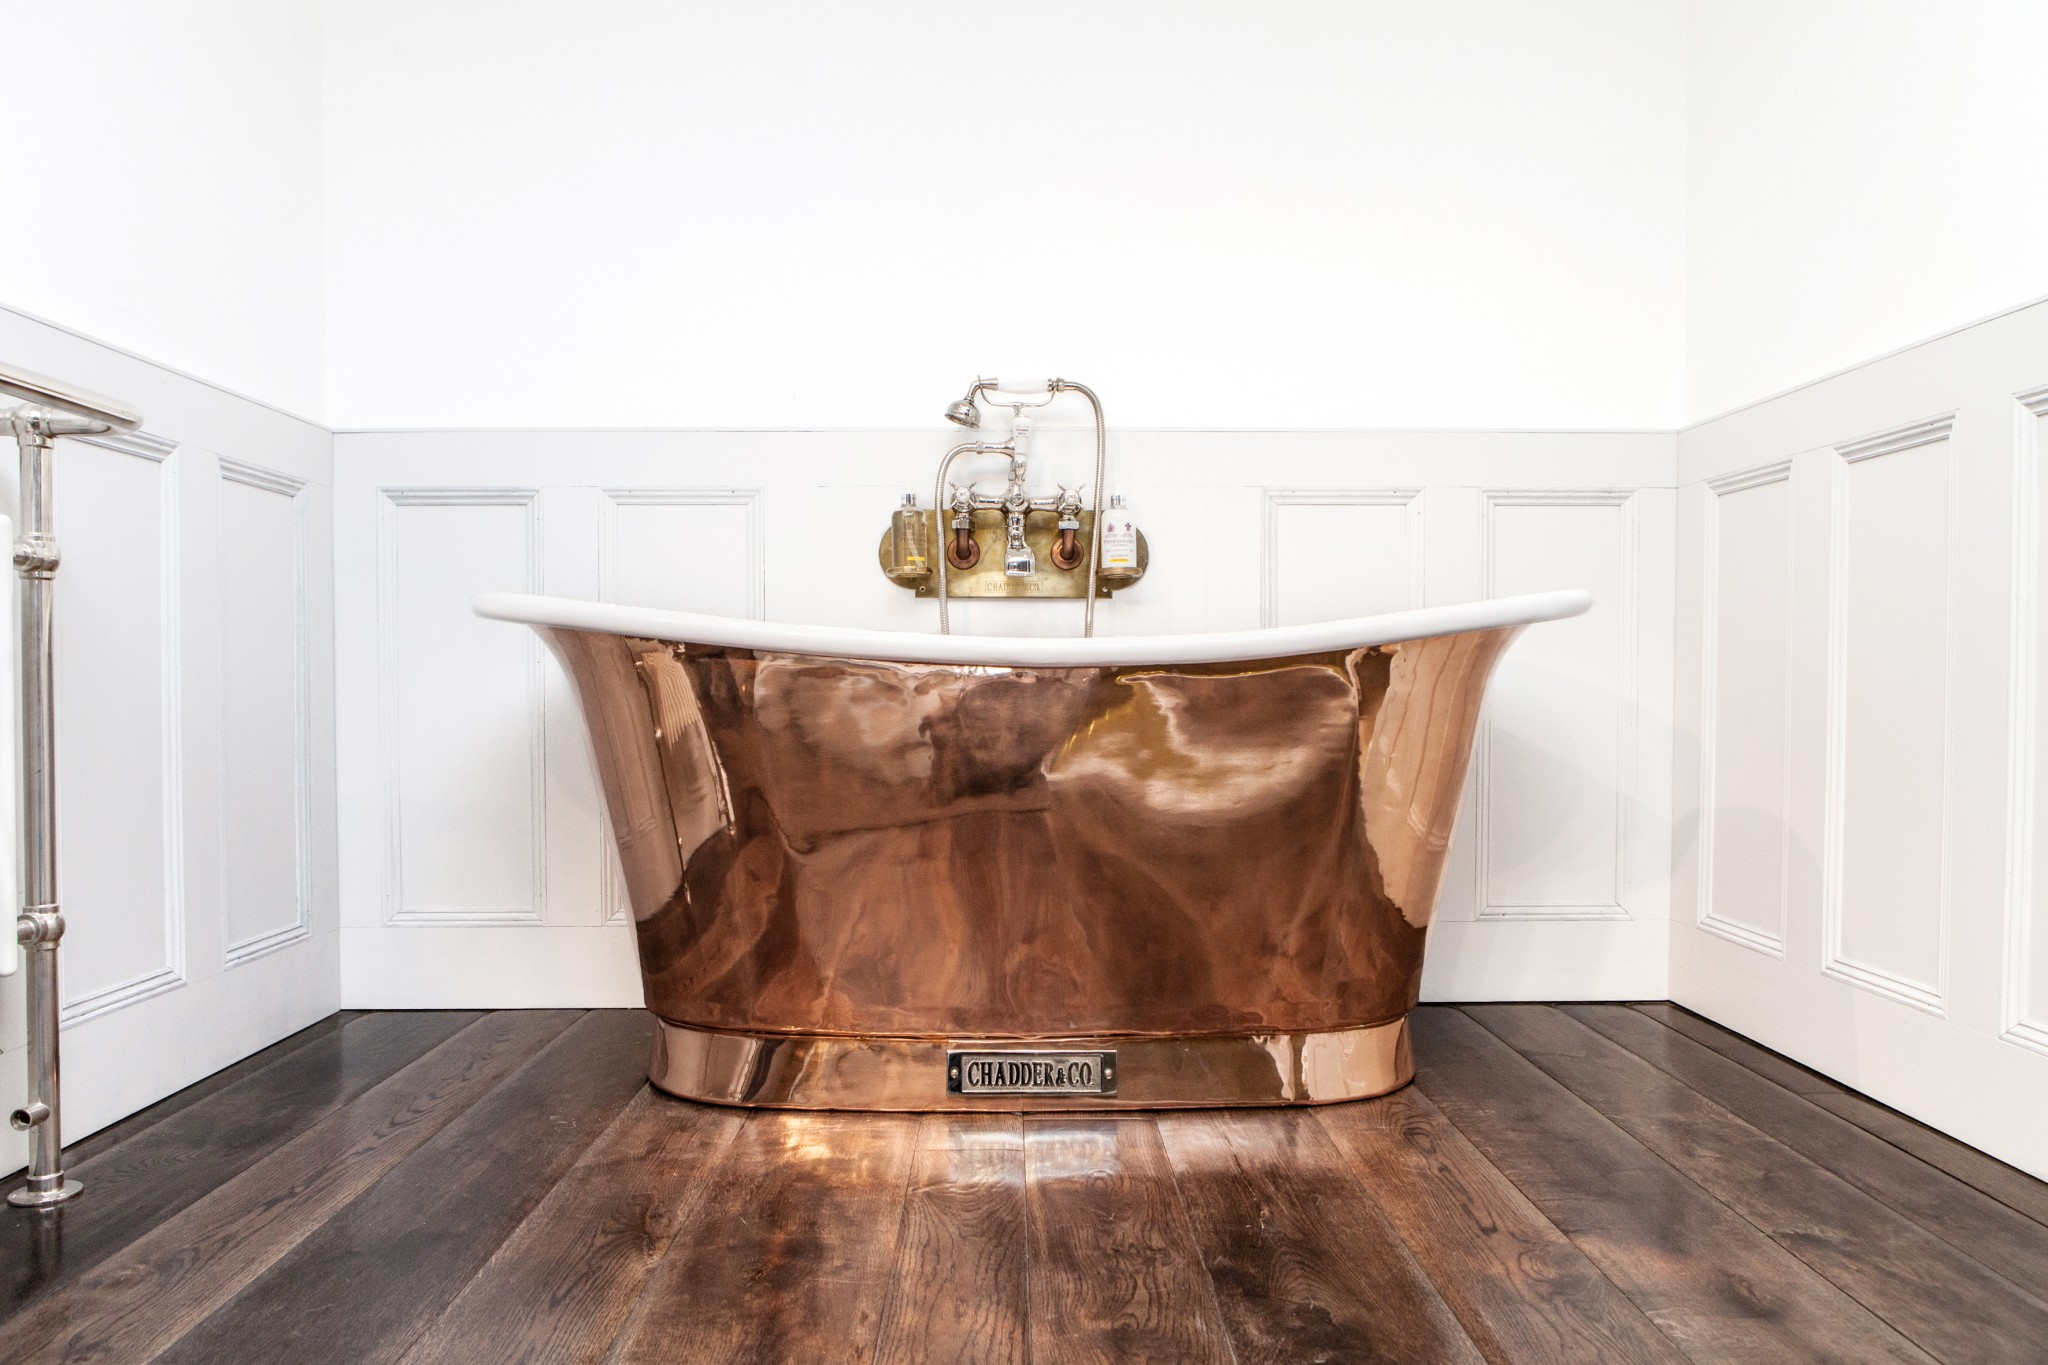 Royal Copper Bath with White Interior  Chadder  Co